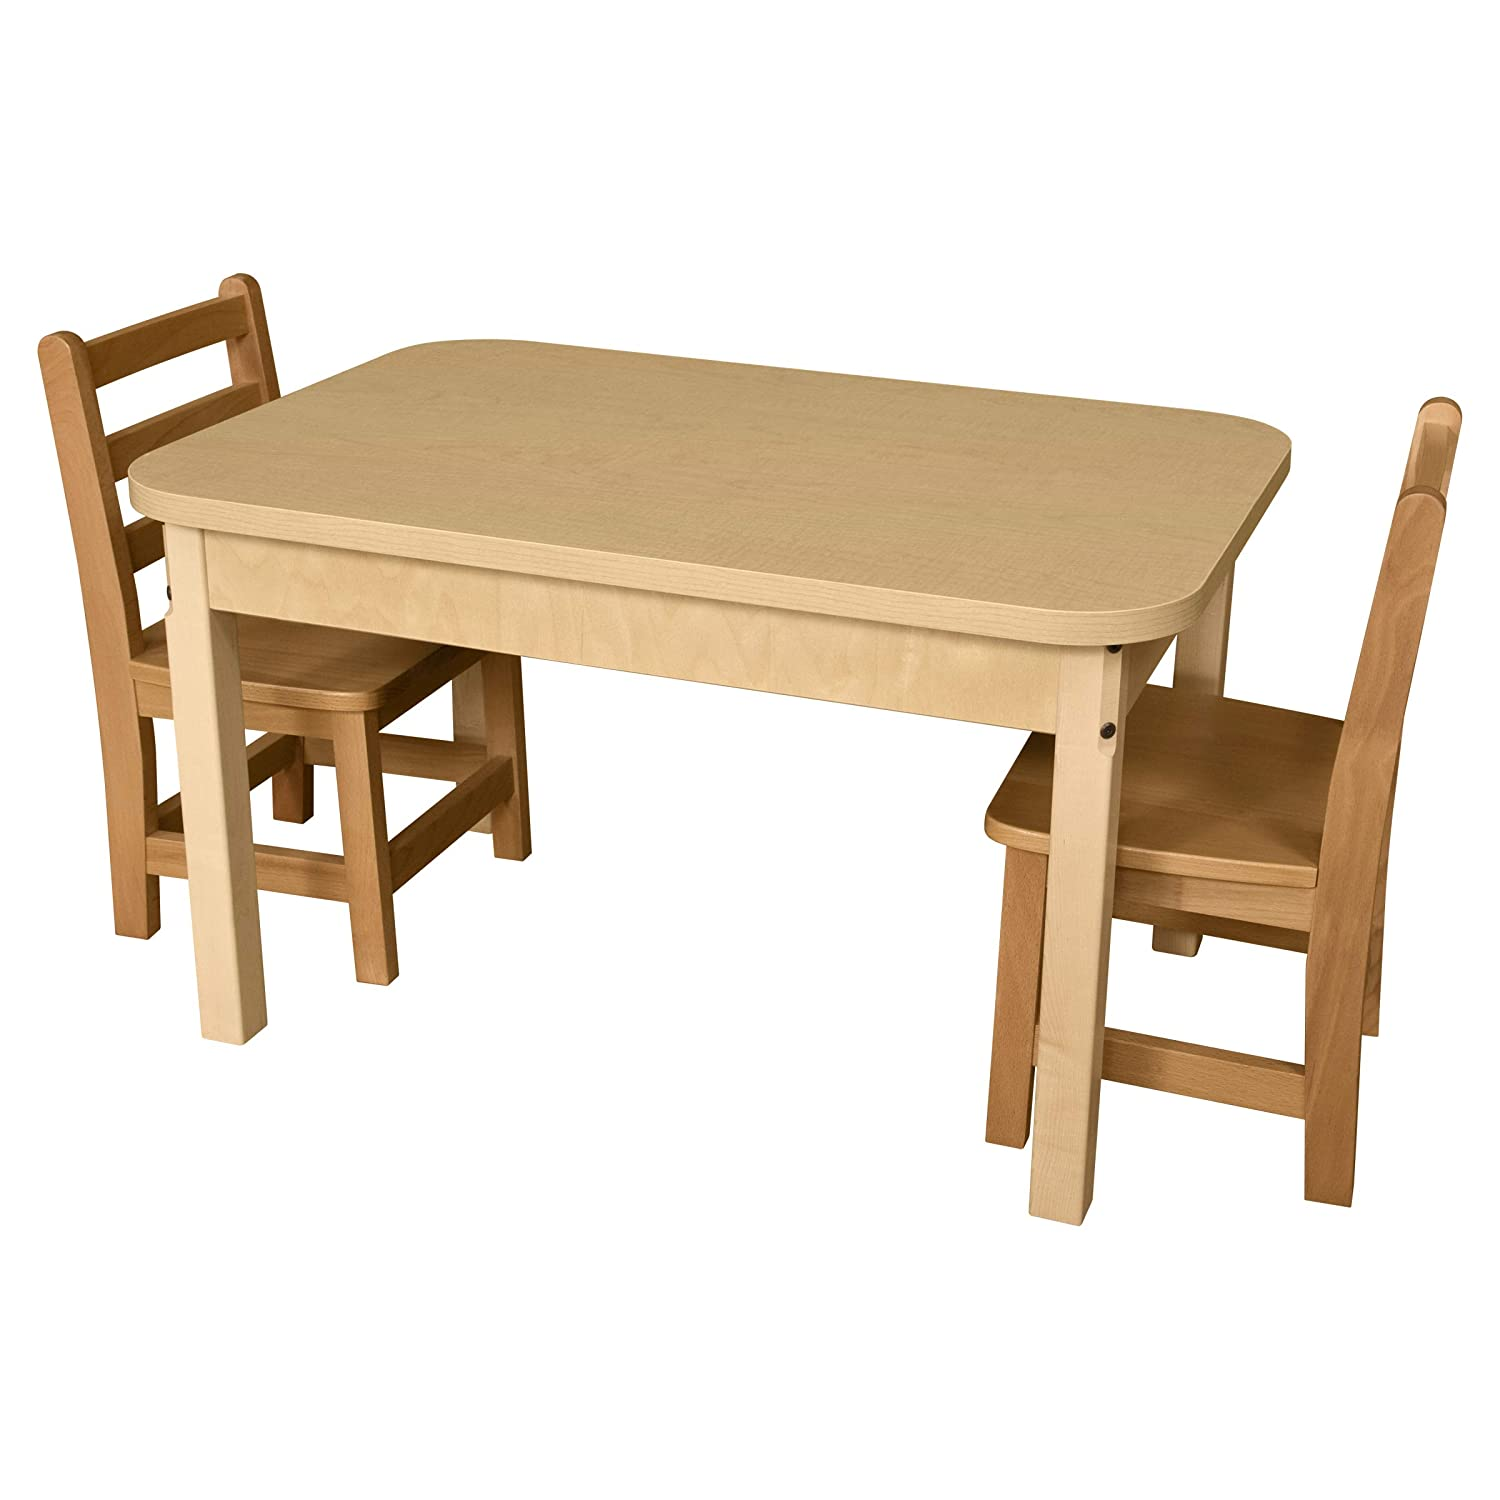 Wood Designs 24 x 36 Rectangle High Pressure Laminate Table with Hardwood Legs 29